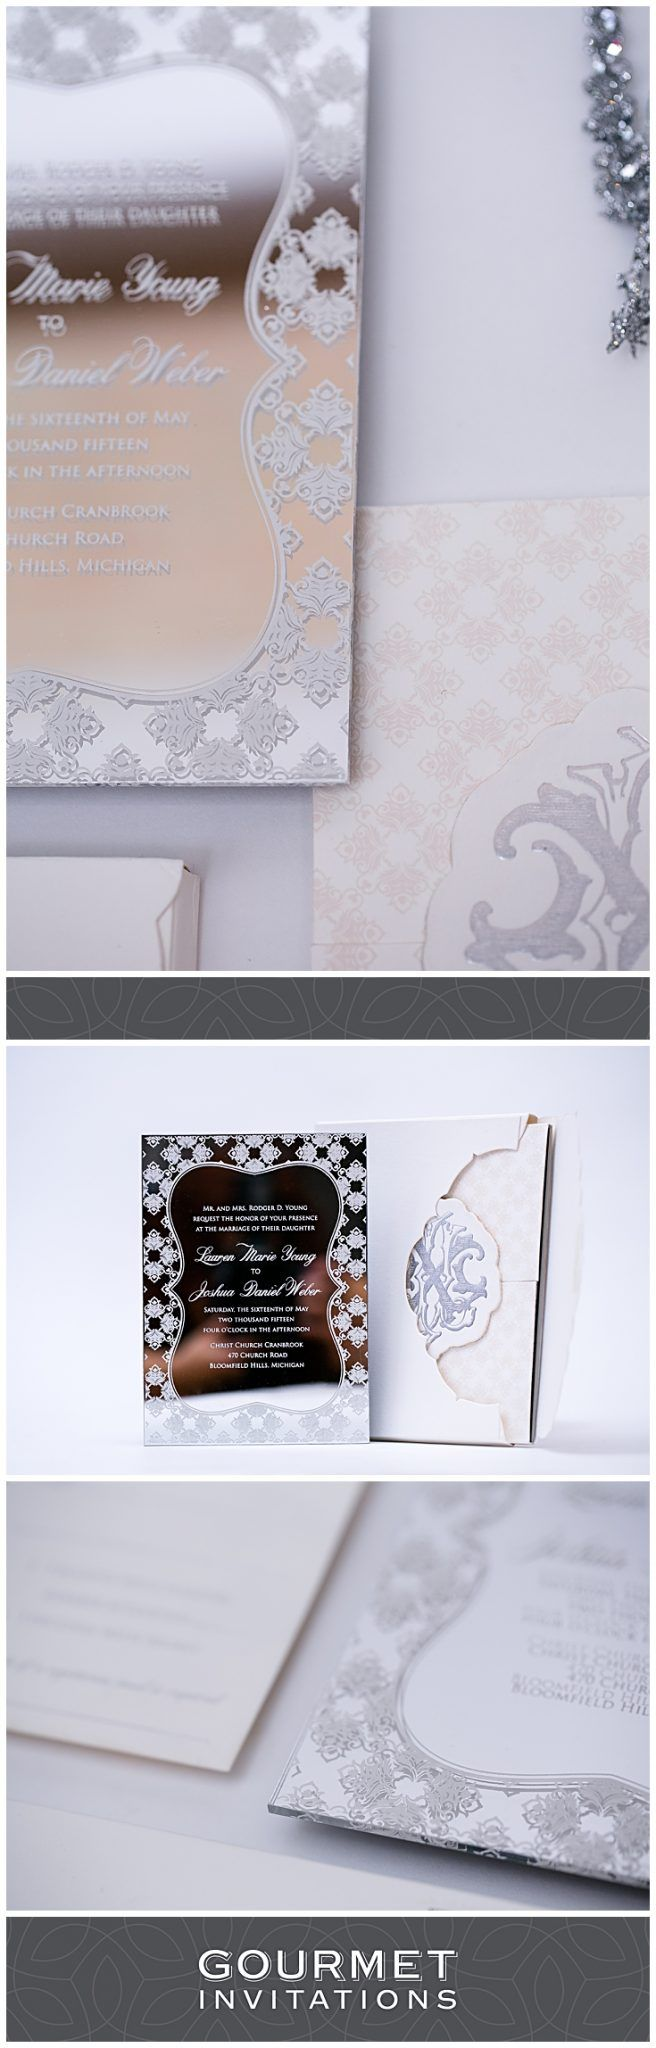 how to address couples on wedding invitations%0A Mirror Invitation Ideas For Your Wedding